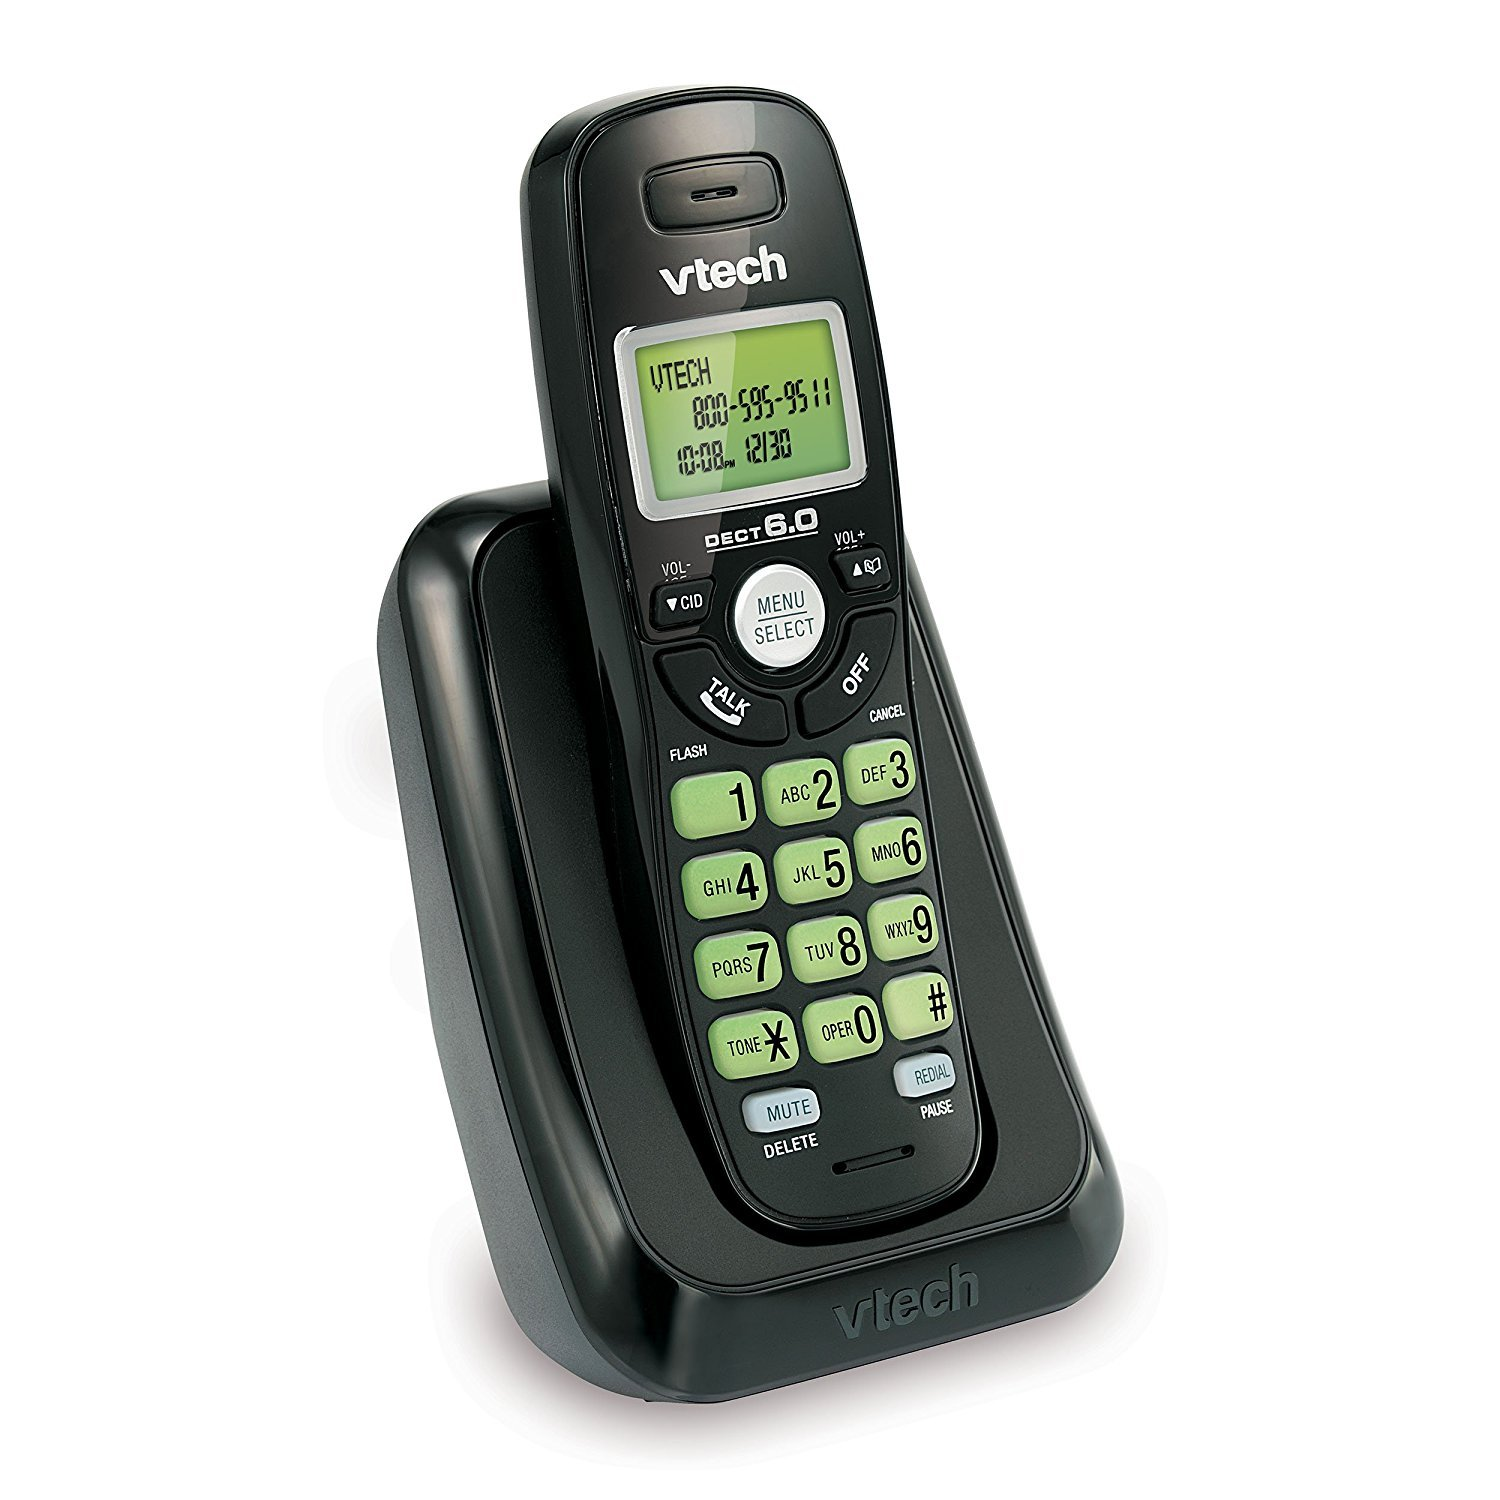 VTech VA17141BK DECT 6.0 Cordless Phone with Caller ID, Wall-Mountable, Black by VTech